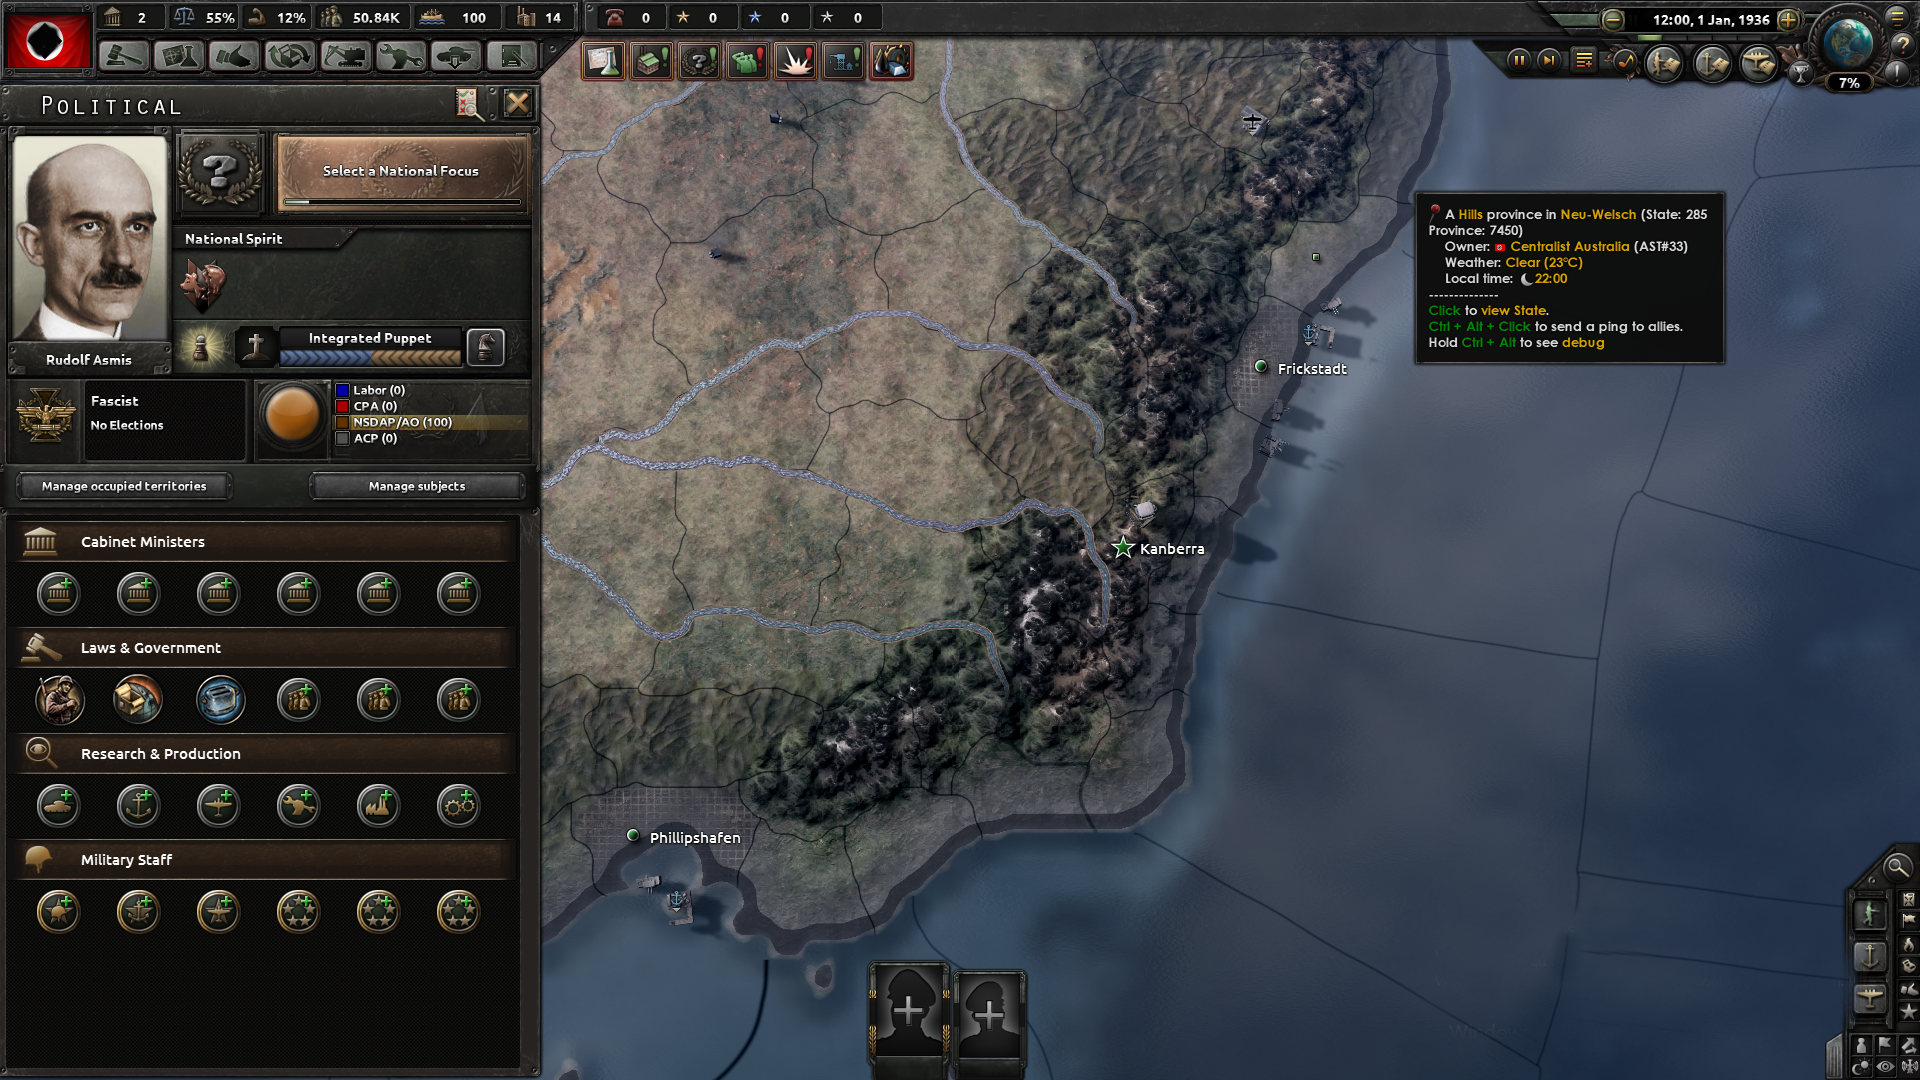 Better Realism Project II mod for Hearts of Iron IV - Mod DB